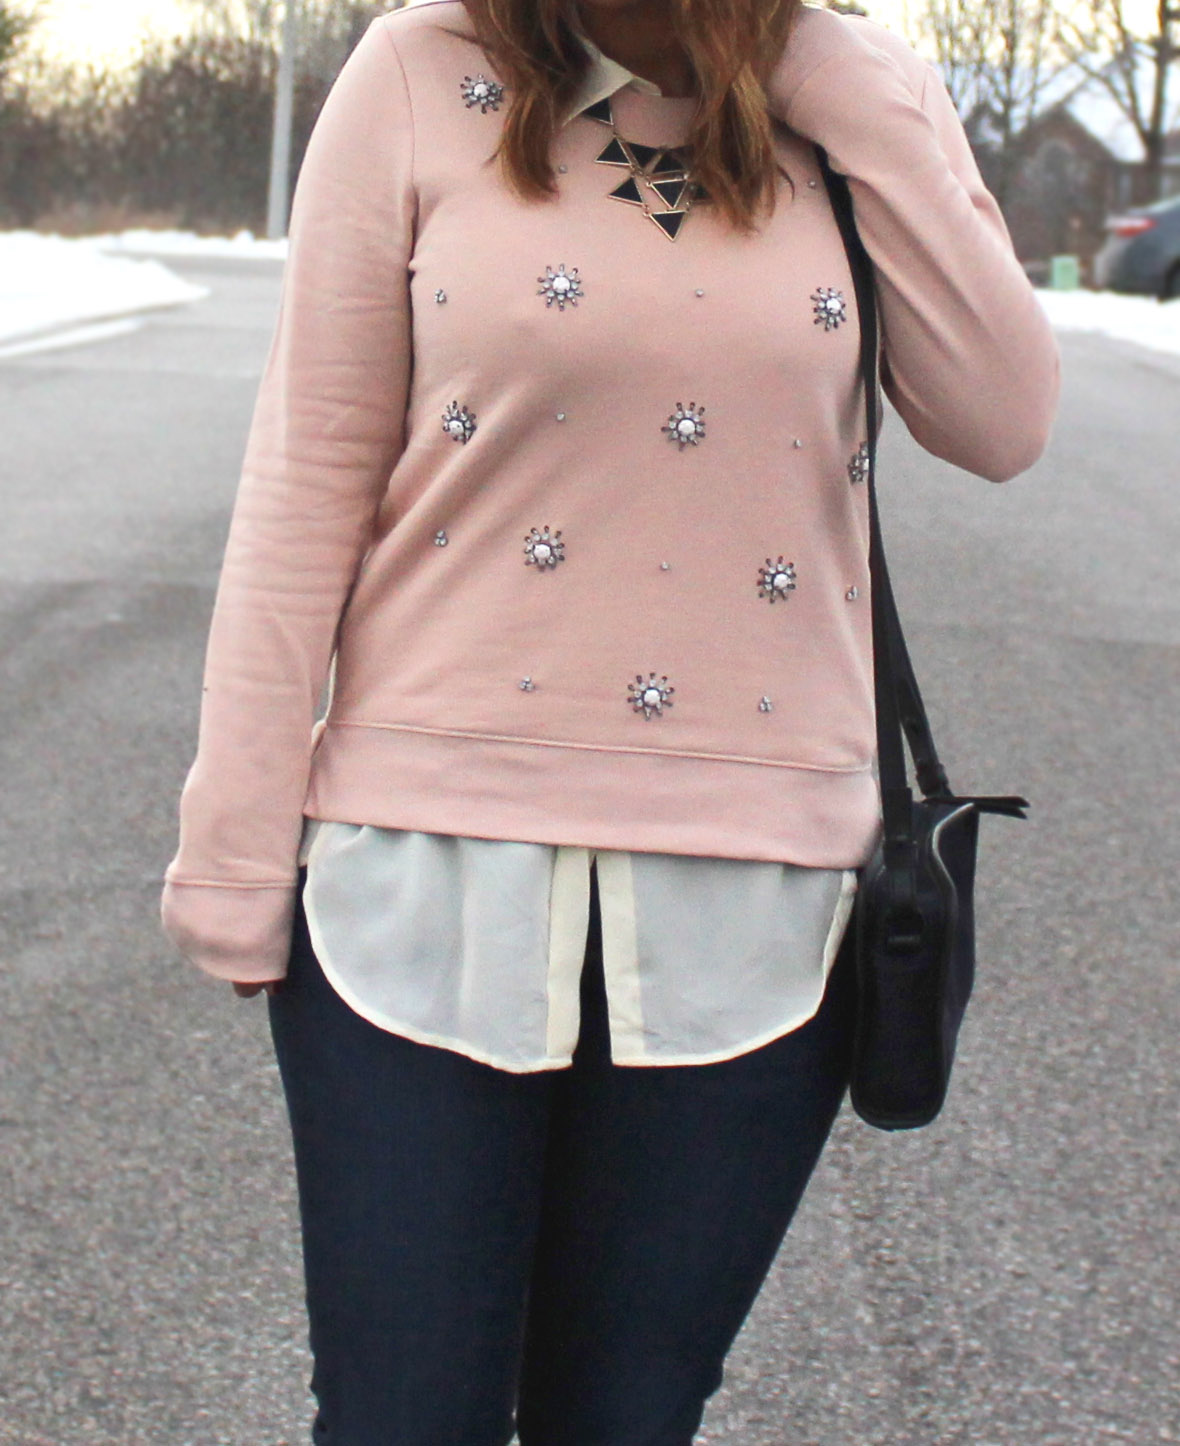 Jeans and a Sweatshirt - How to beat the January blahs with sparkles and accessories / somethingaboutthat.com